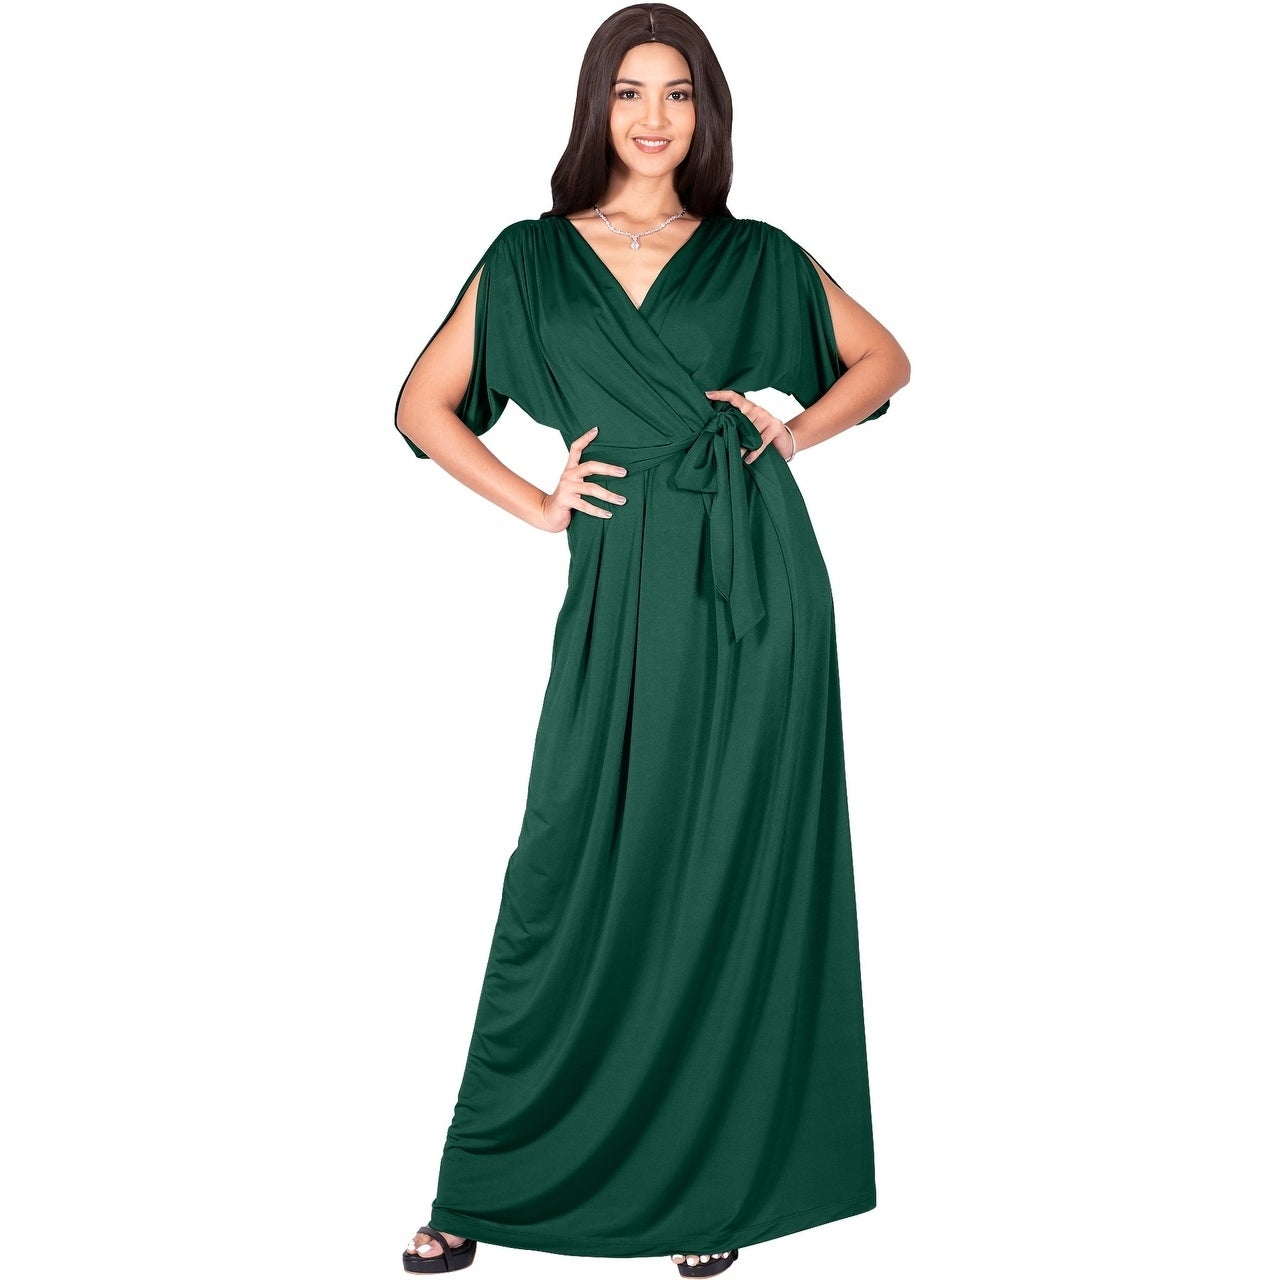 079edfbdce Emerald Green Semi Formal Dress - Data Dynamic AG